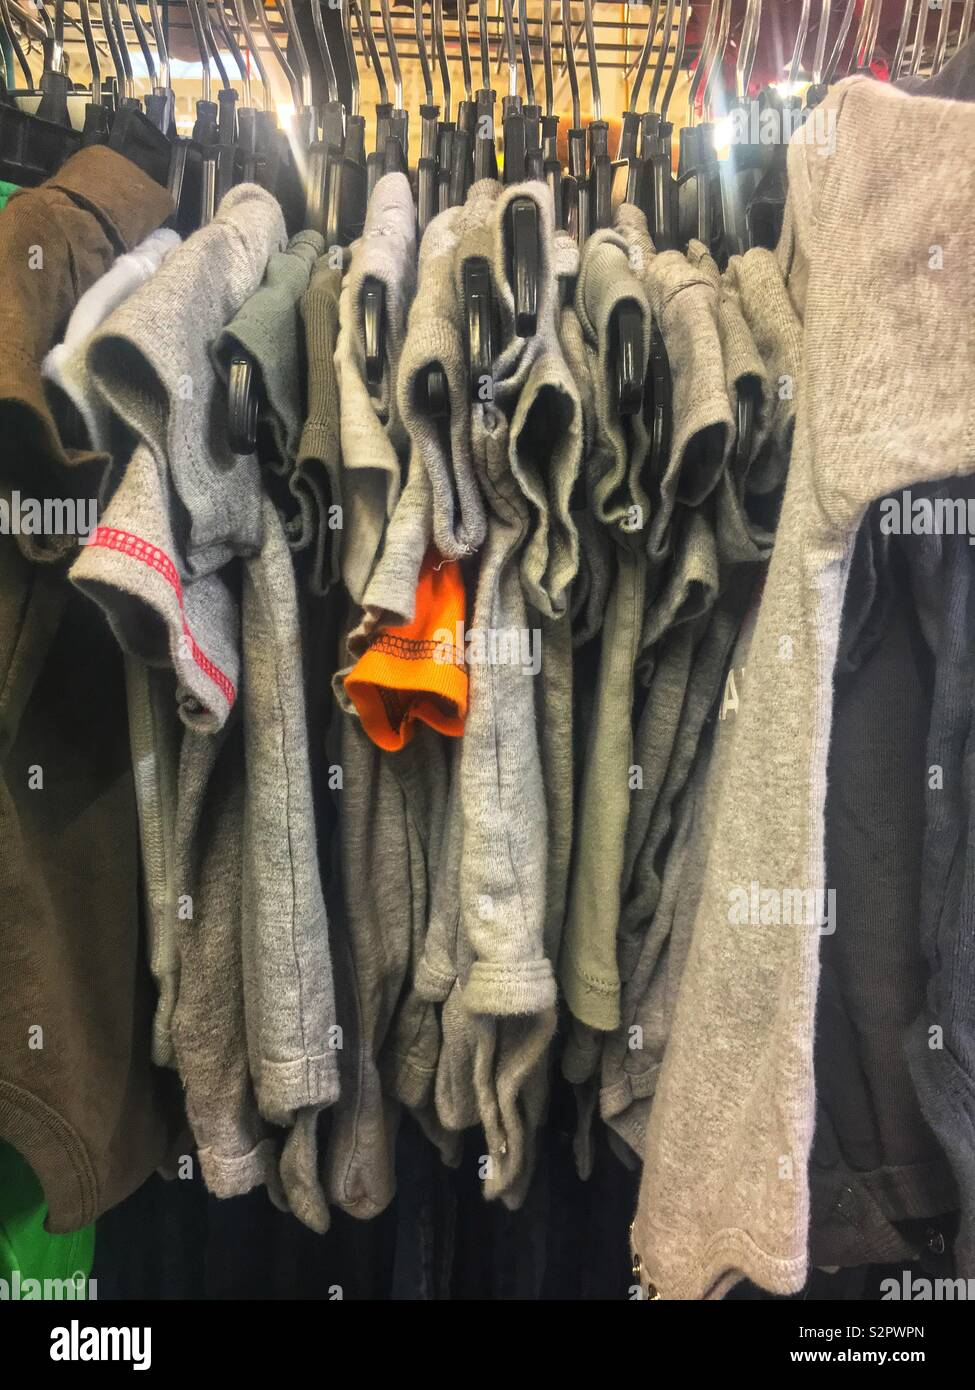 Many short sleeved cotton shirts of various grey colors and hanging on a rod. - Stock Image